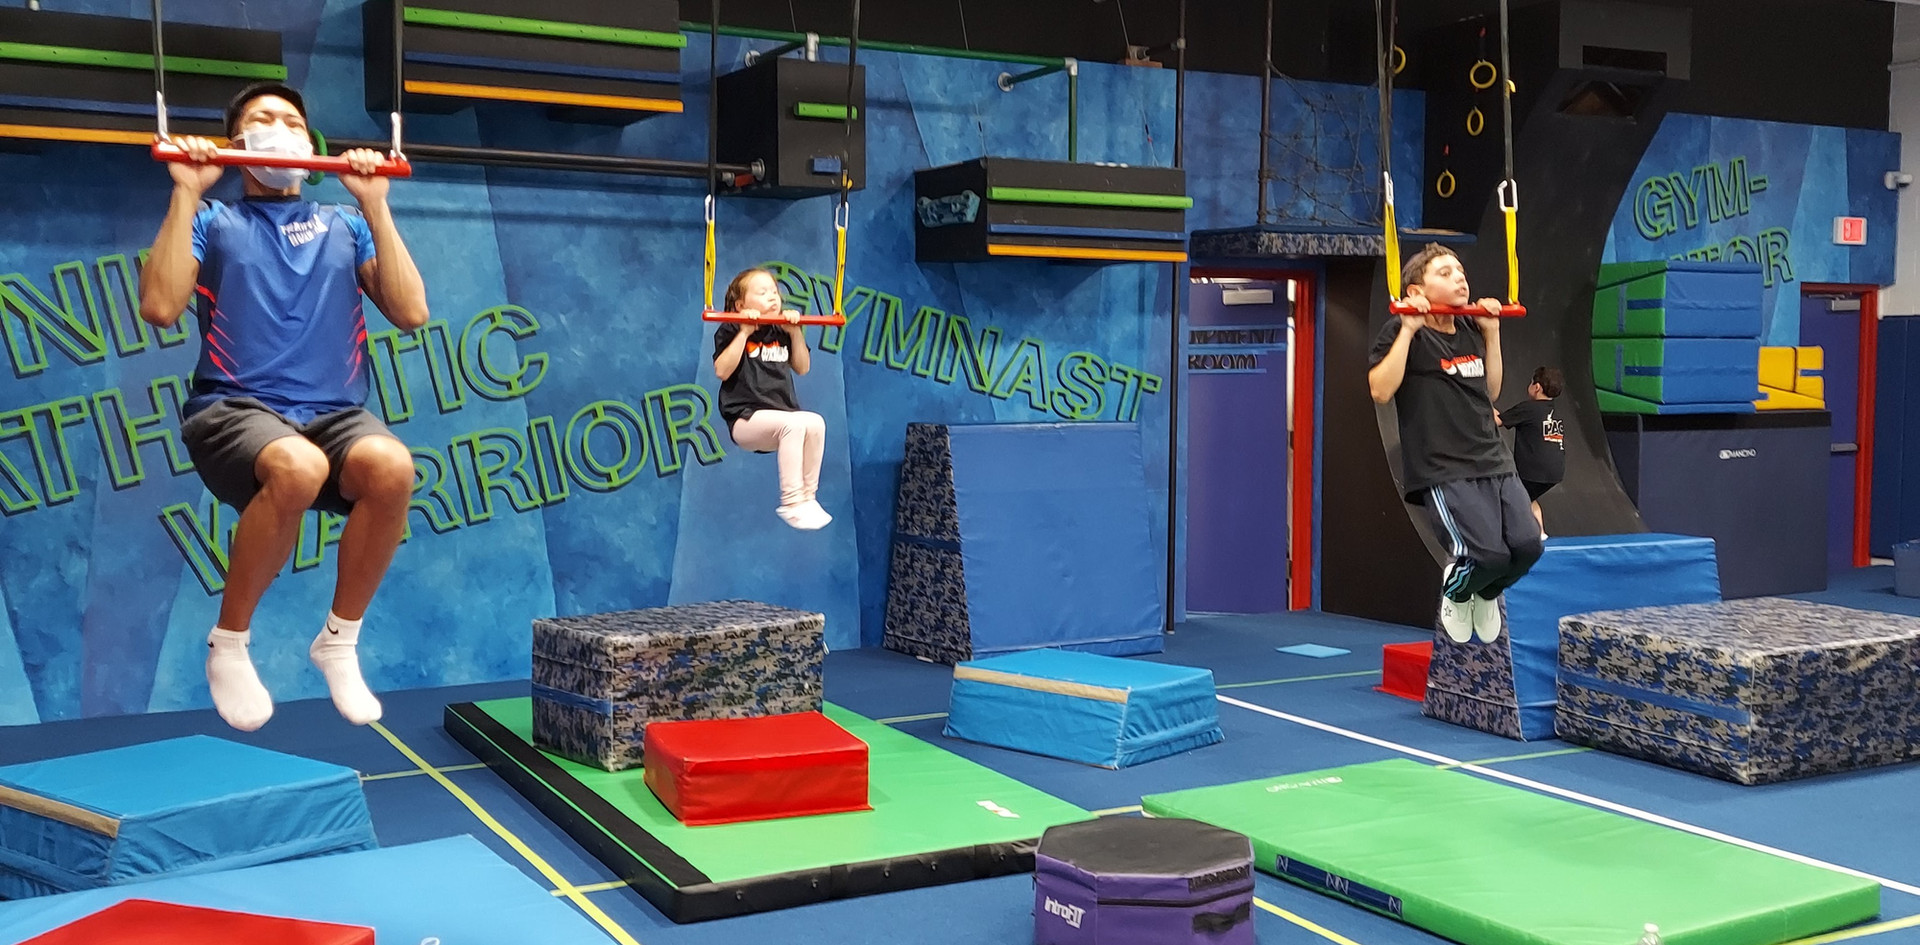 Ninja Warrior Trapeze Stations